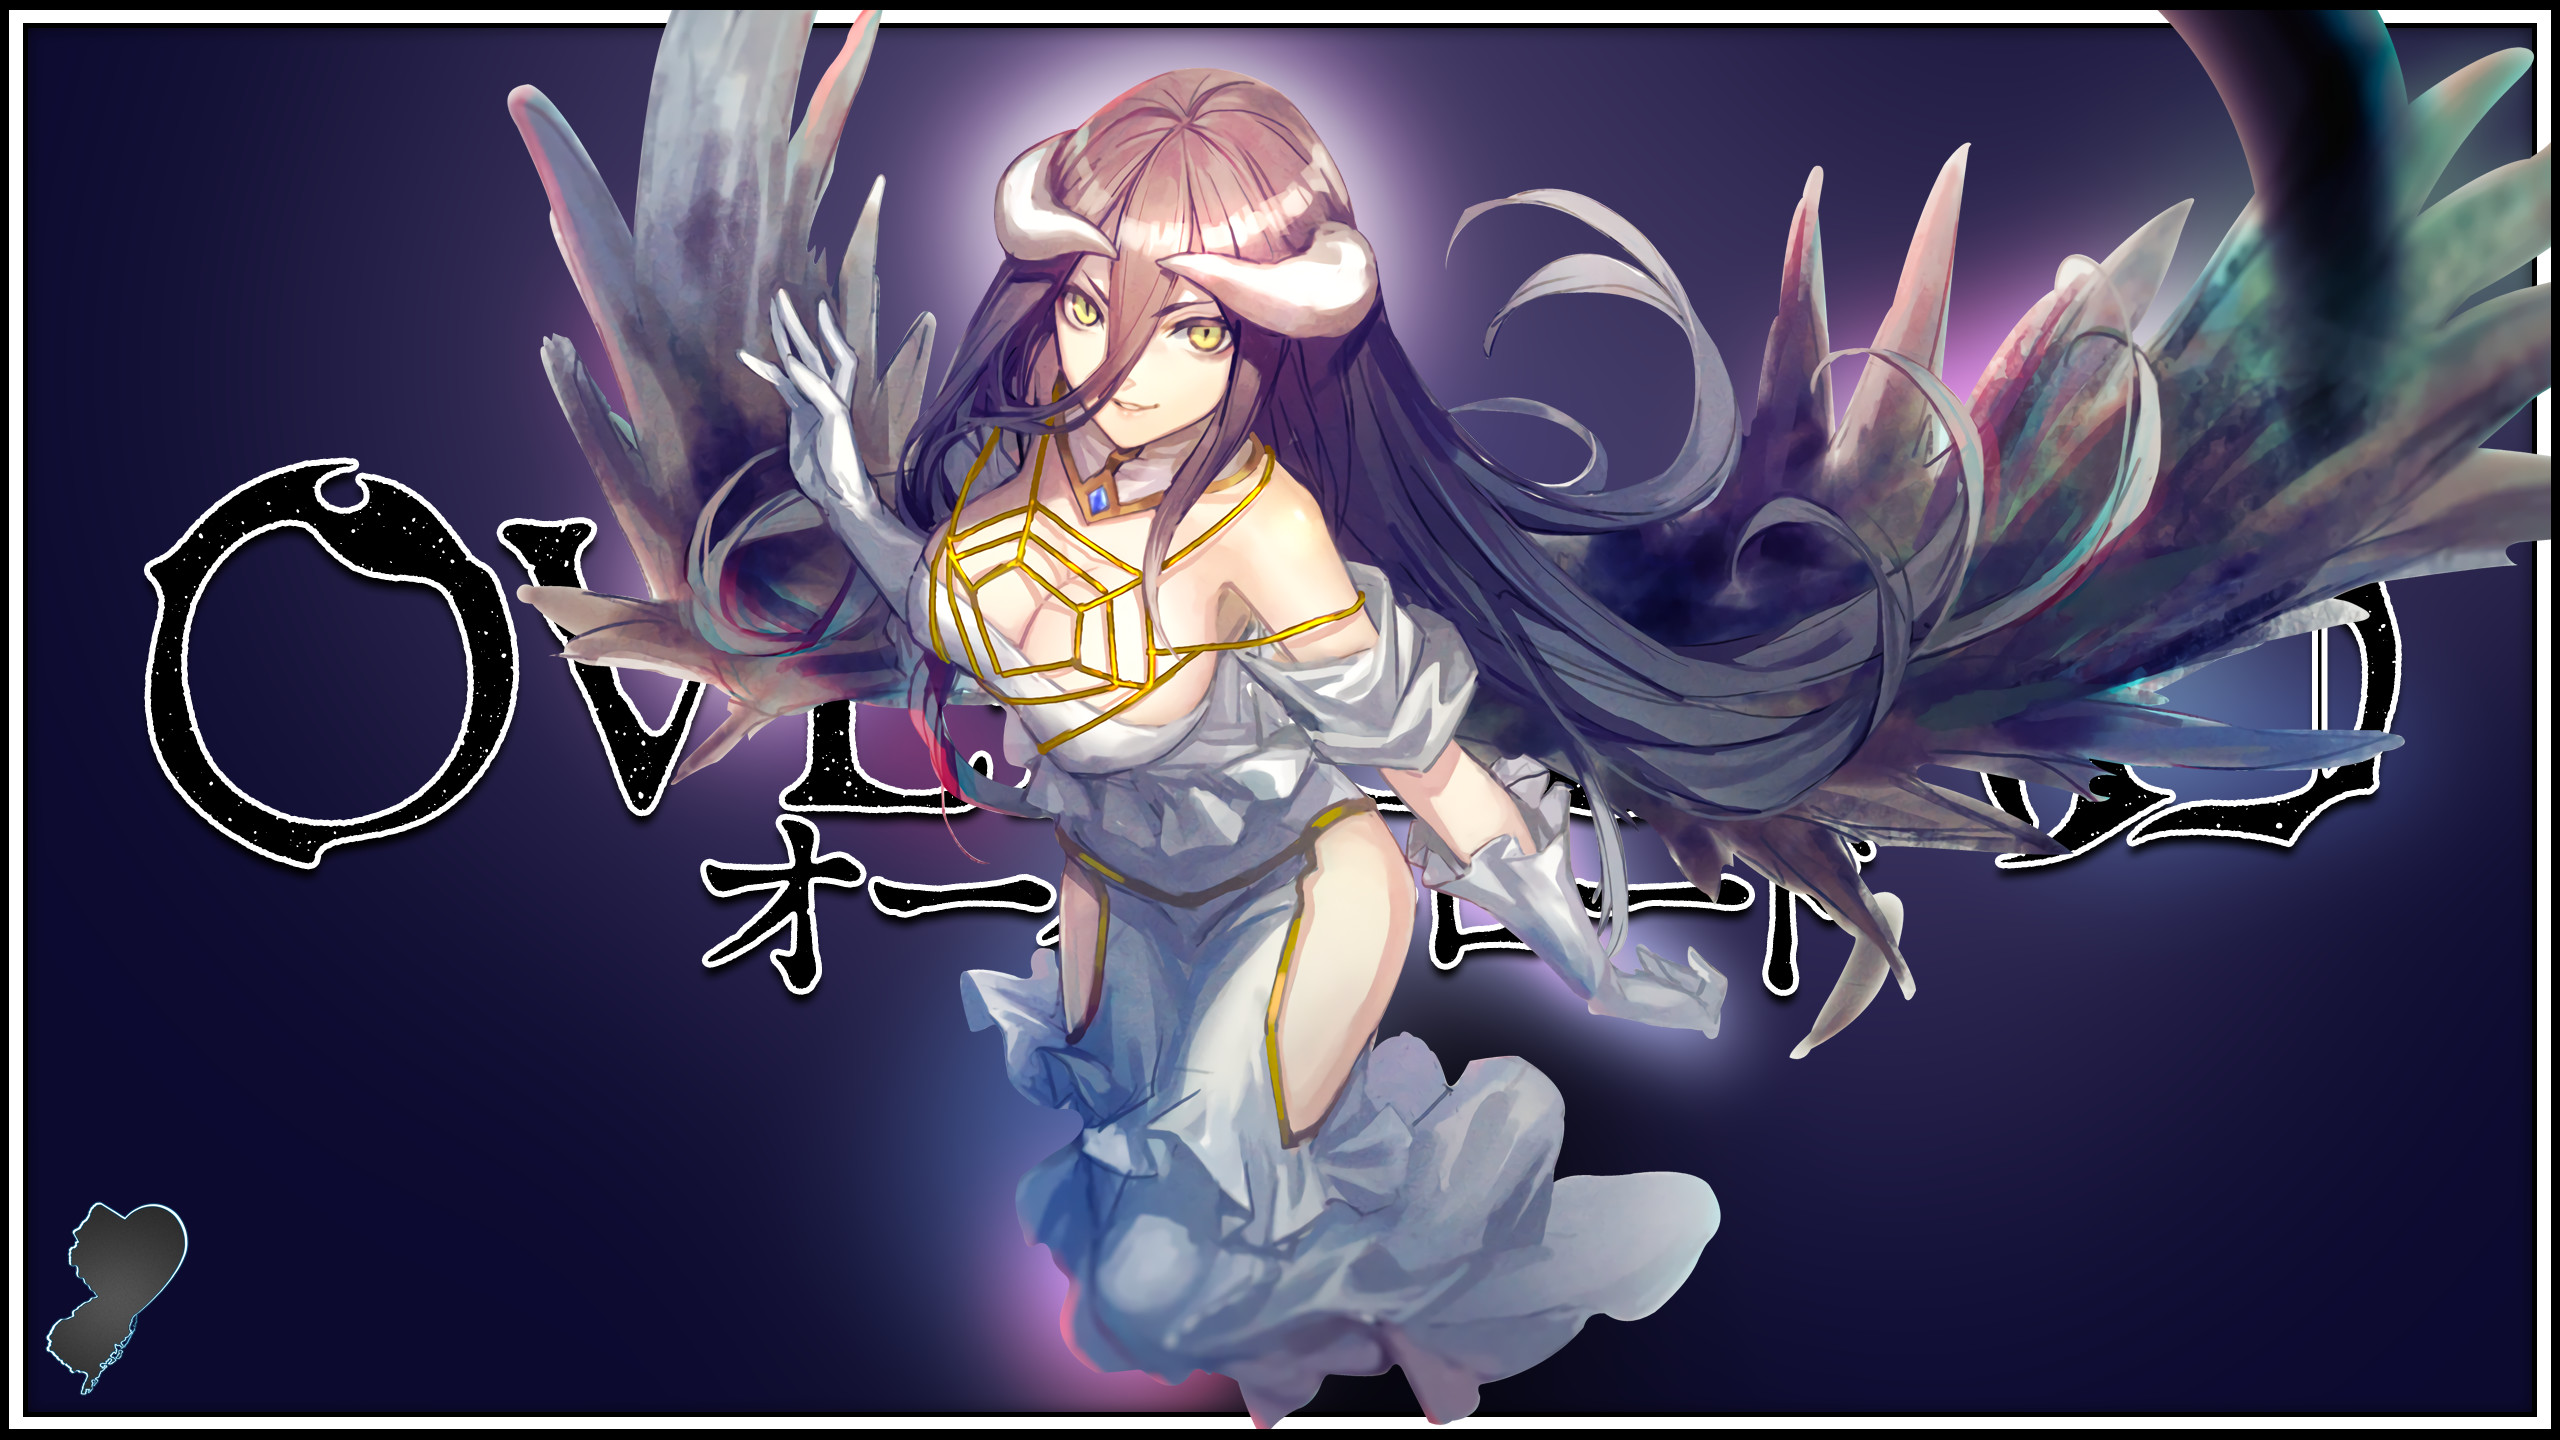 Overlord Anime Albedo Wallpaper 76 Images